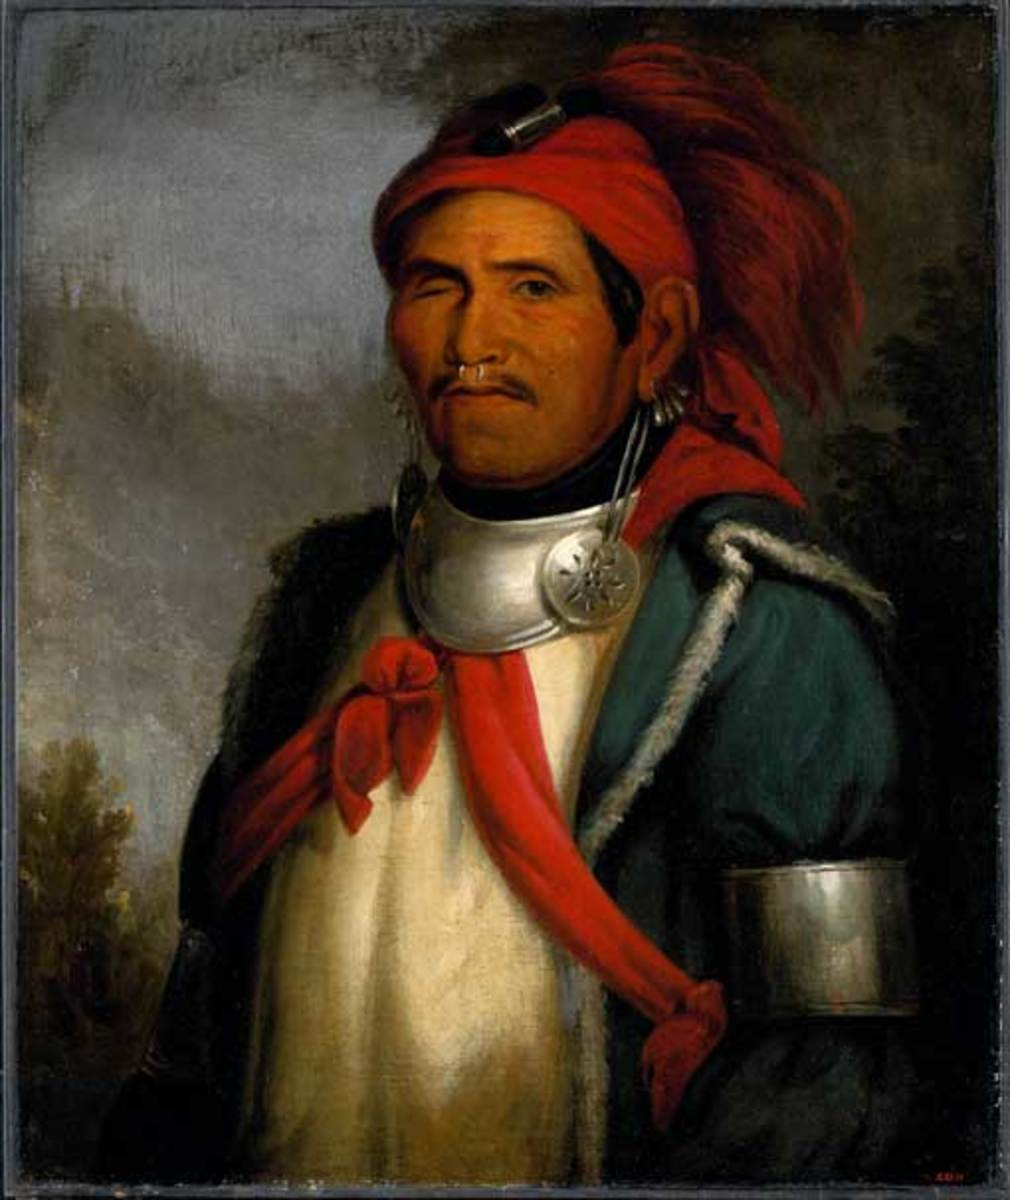 Tenskwatawa, Tecumseh's younger brother also know as the Shawnee Prophet.